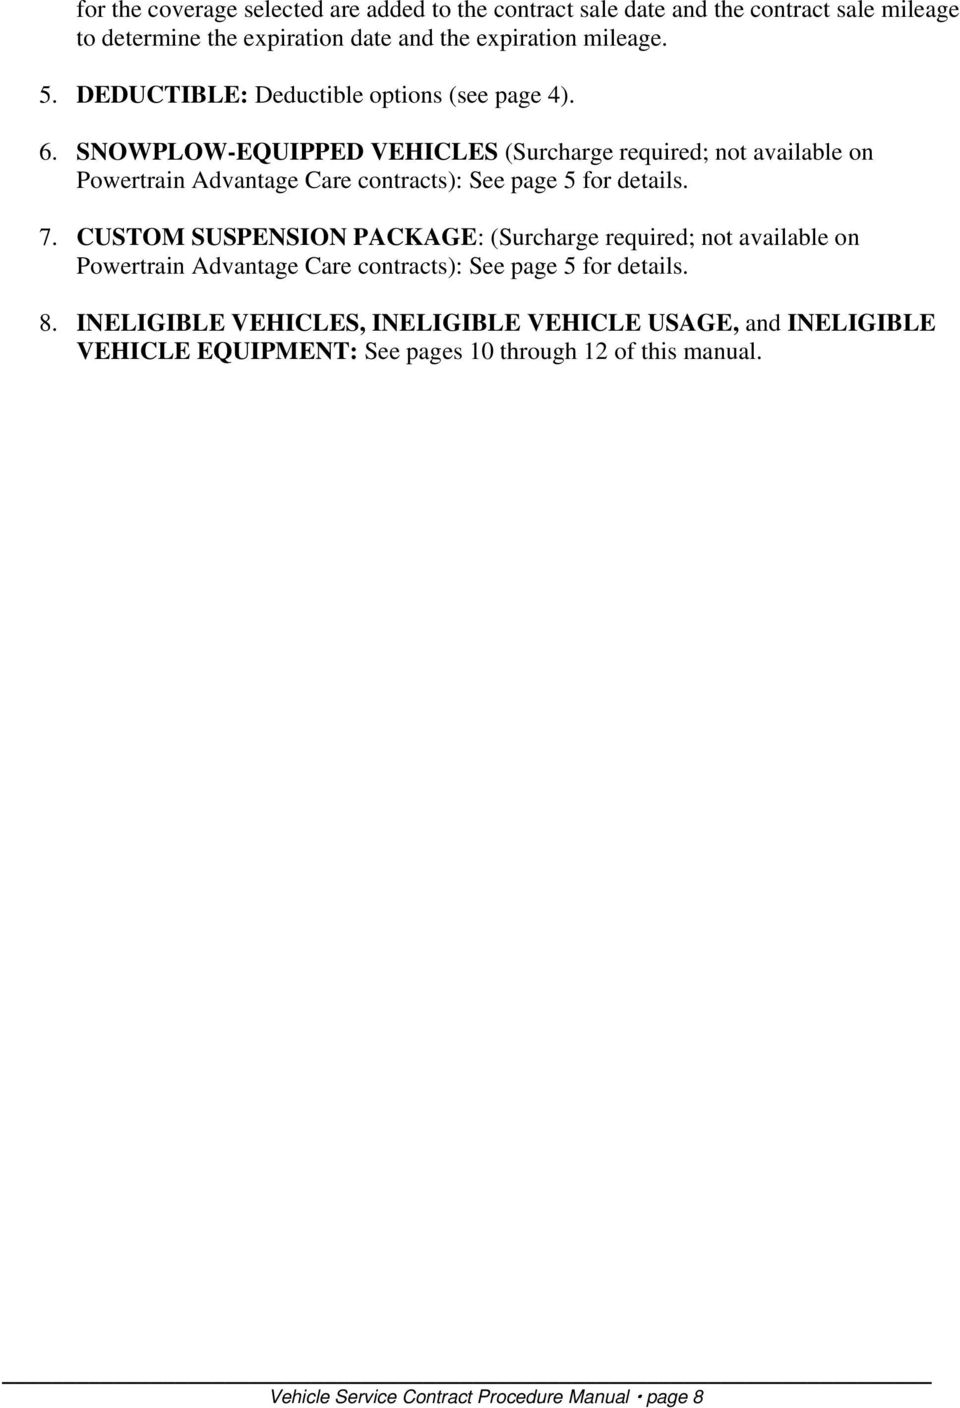 vehicle service contract procedure manual pdf